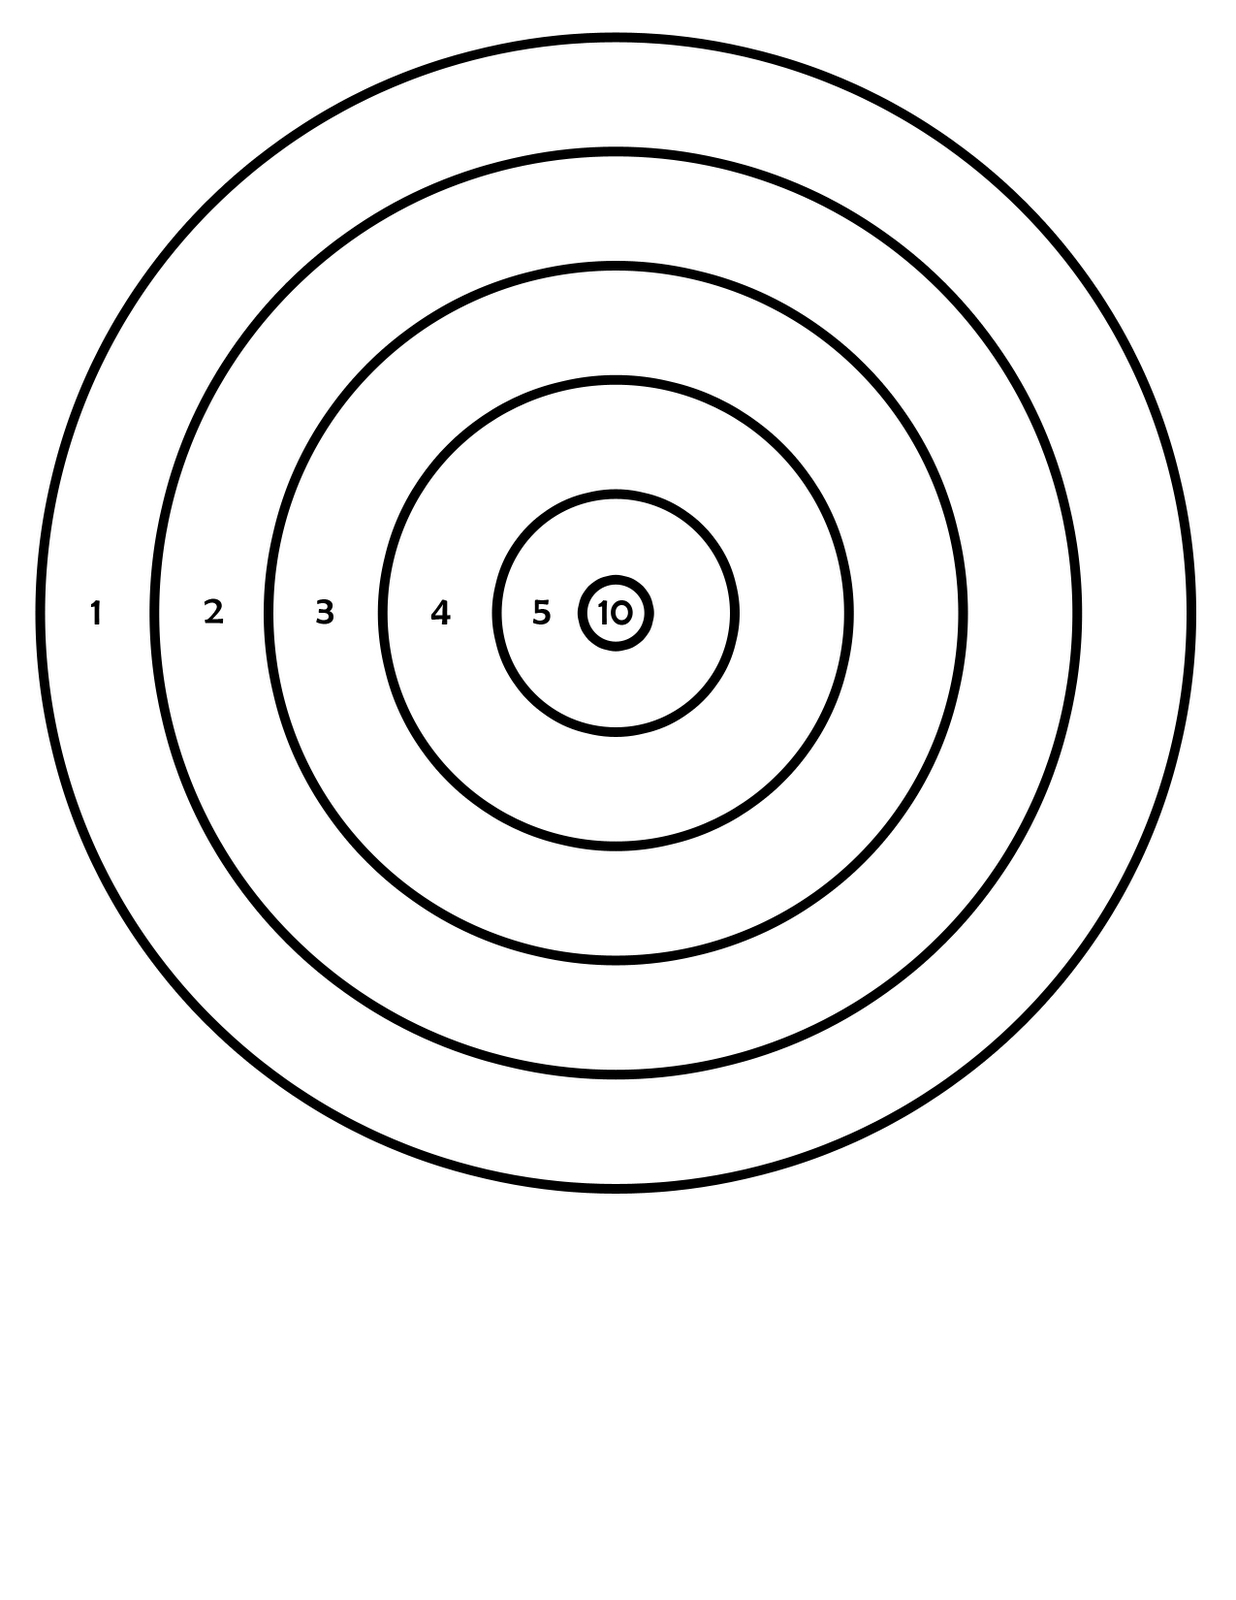 Printable Targets | 411Toys: Free Printable Airsoft Targets - Free Printable Targets